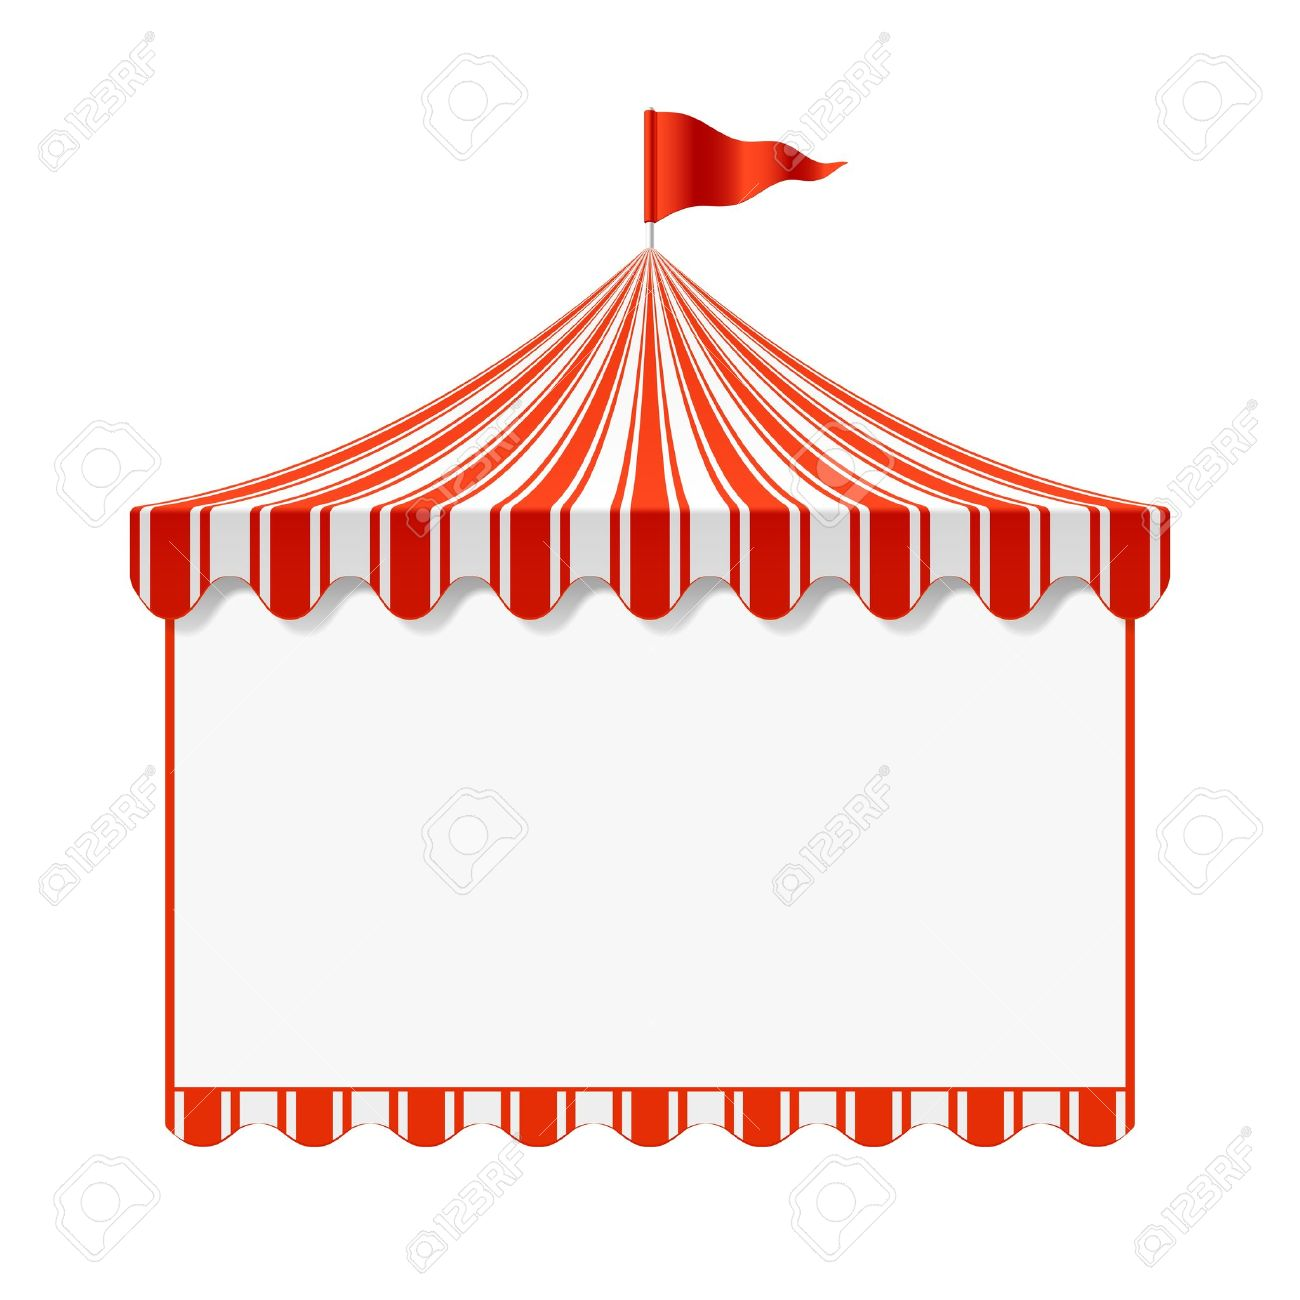 Tent clipart stock vector for free download and use images in.